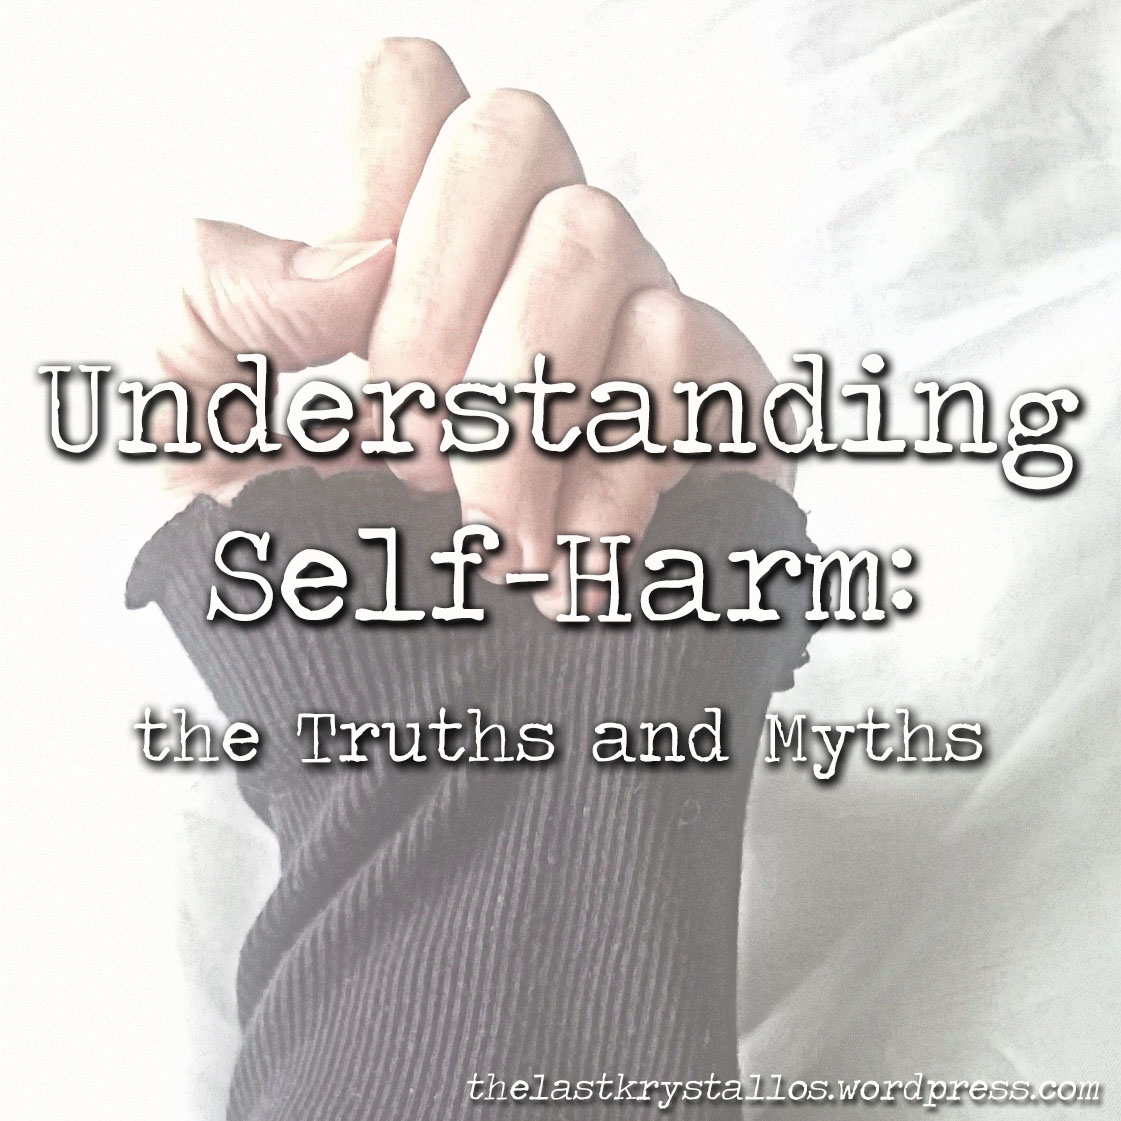 understanding self-harm: the truths and myths and how to help | the